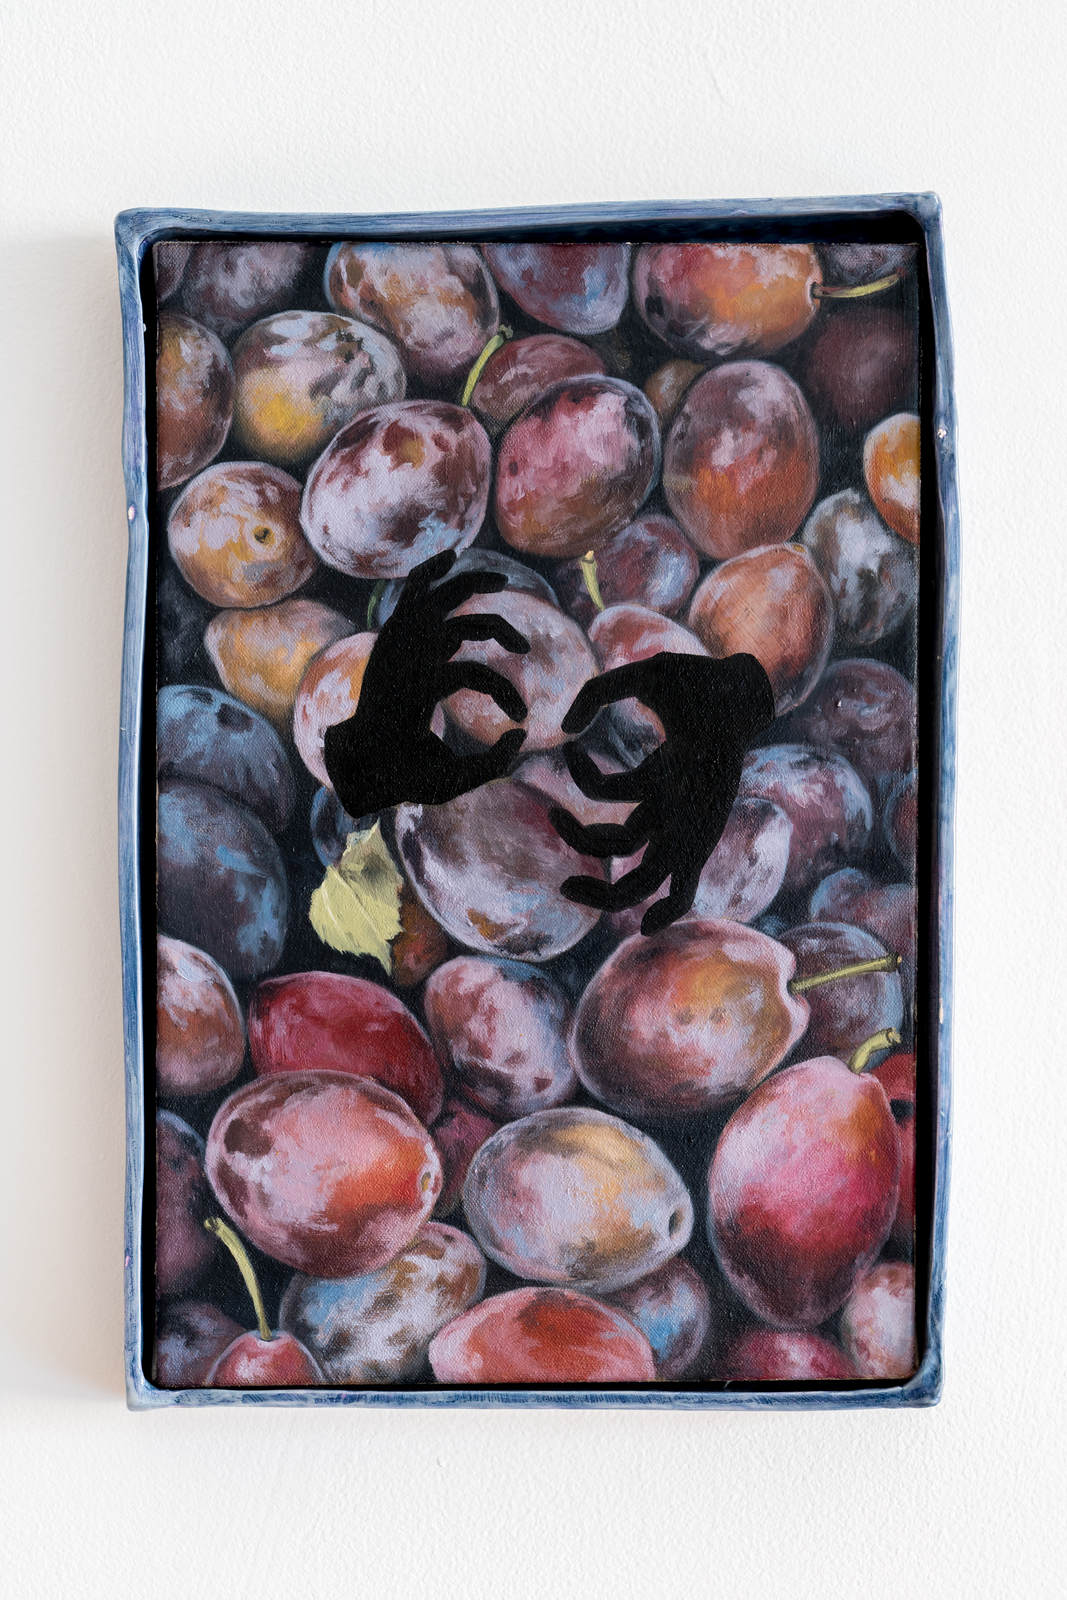 stephanie hier snail snafu 2016 oil on canvas ceramic frame with glaze 38 x 35 x 5 cm 15 x 10 x 2